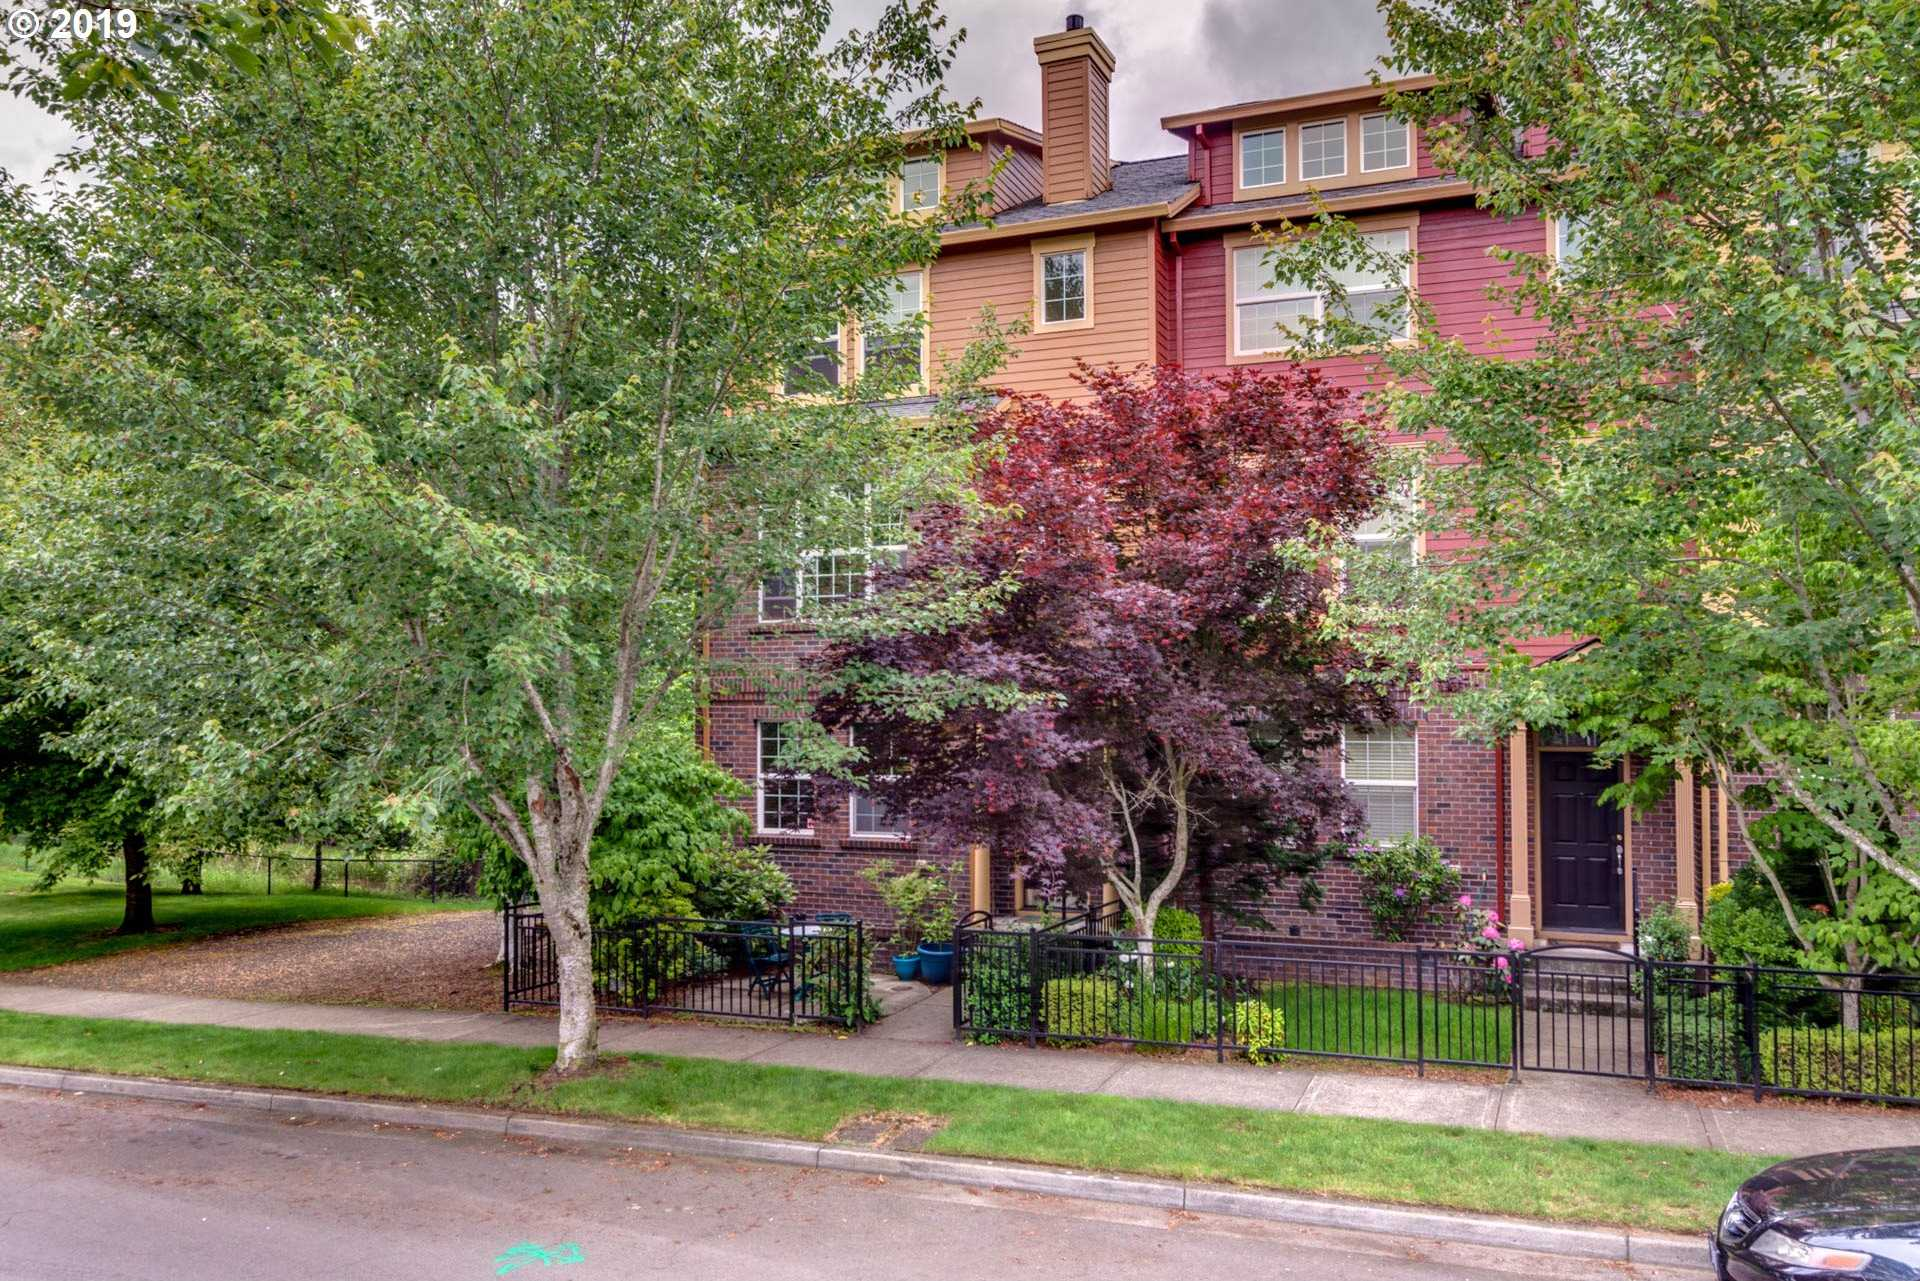 $409,900 - 2Br/4Ba -  for Sale in Orenco Gardens, Hillsboro